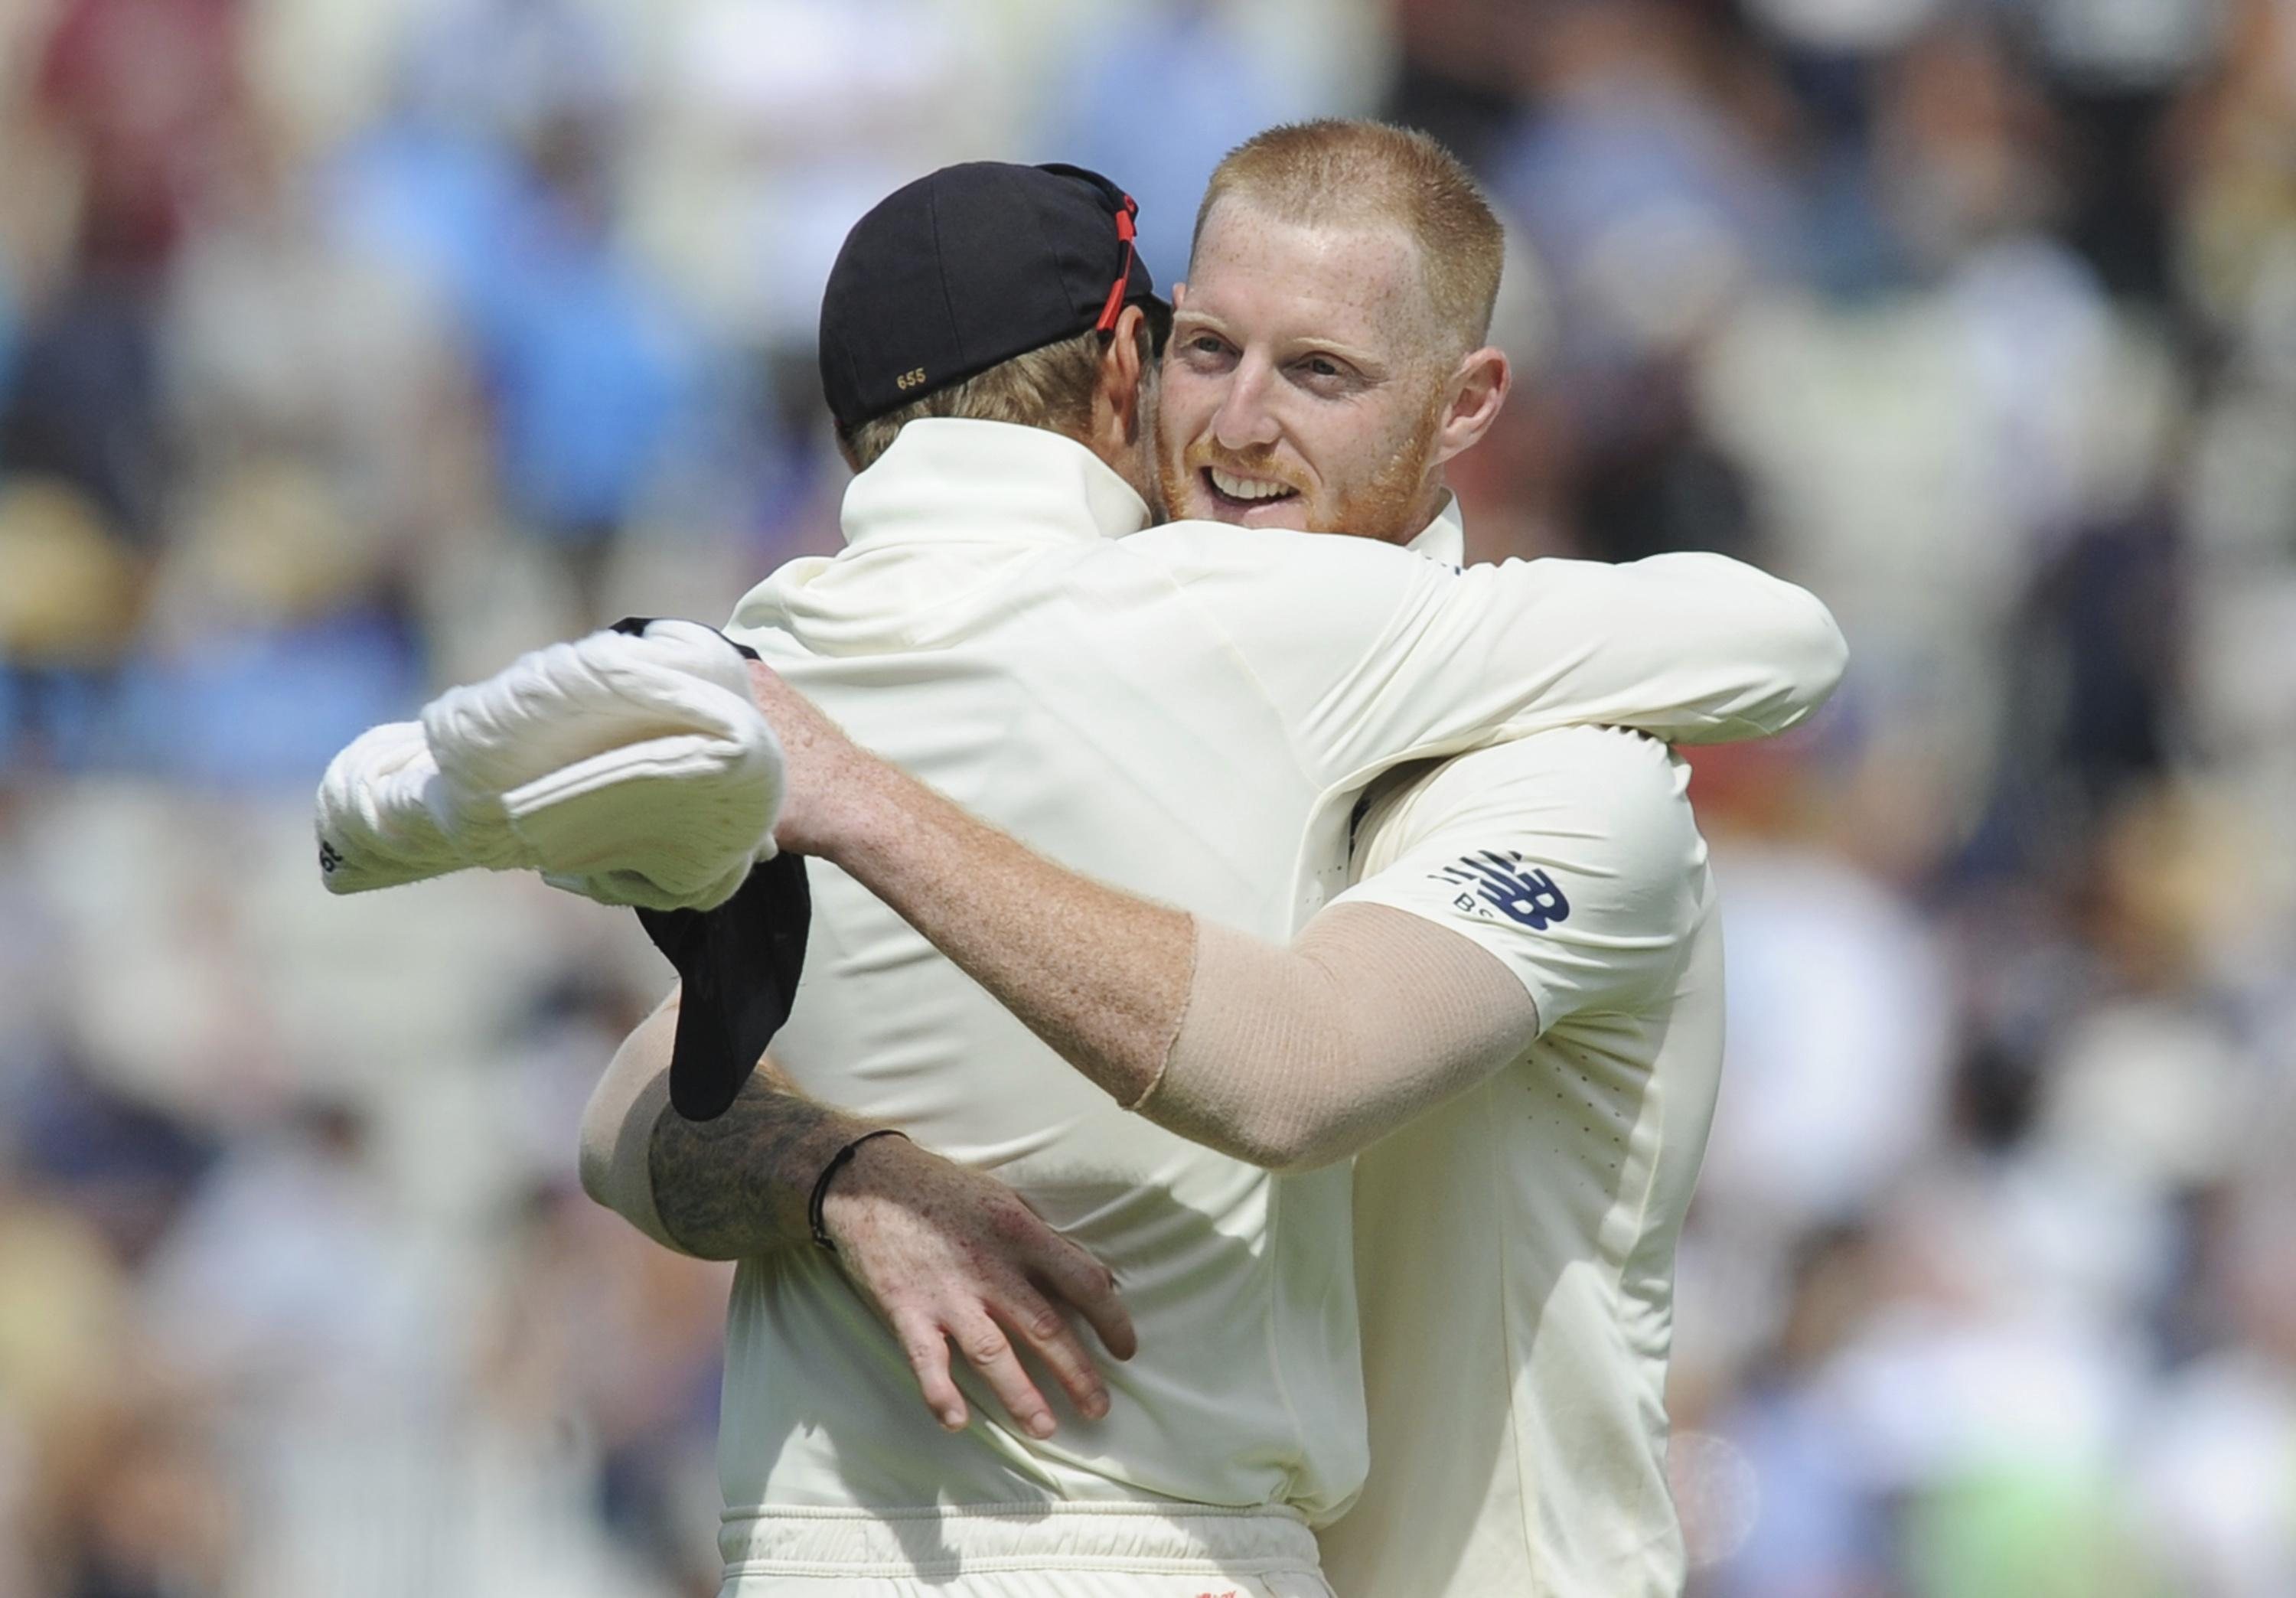 Root will have to do it without star man Ben Stokes, who is in court